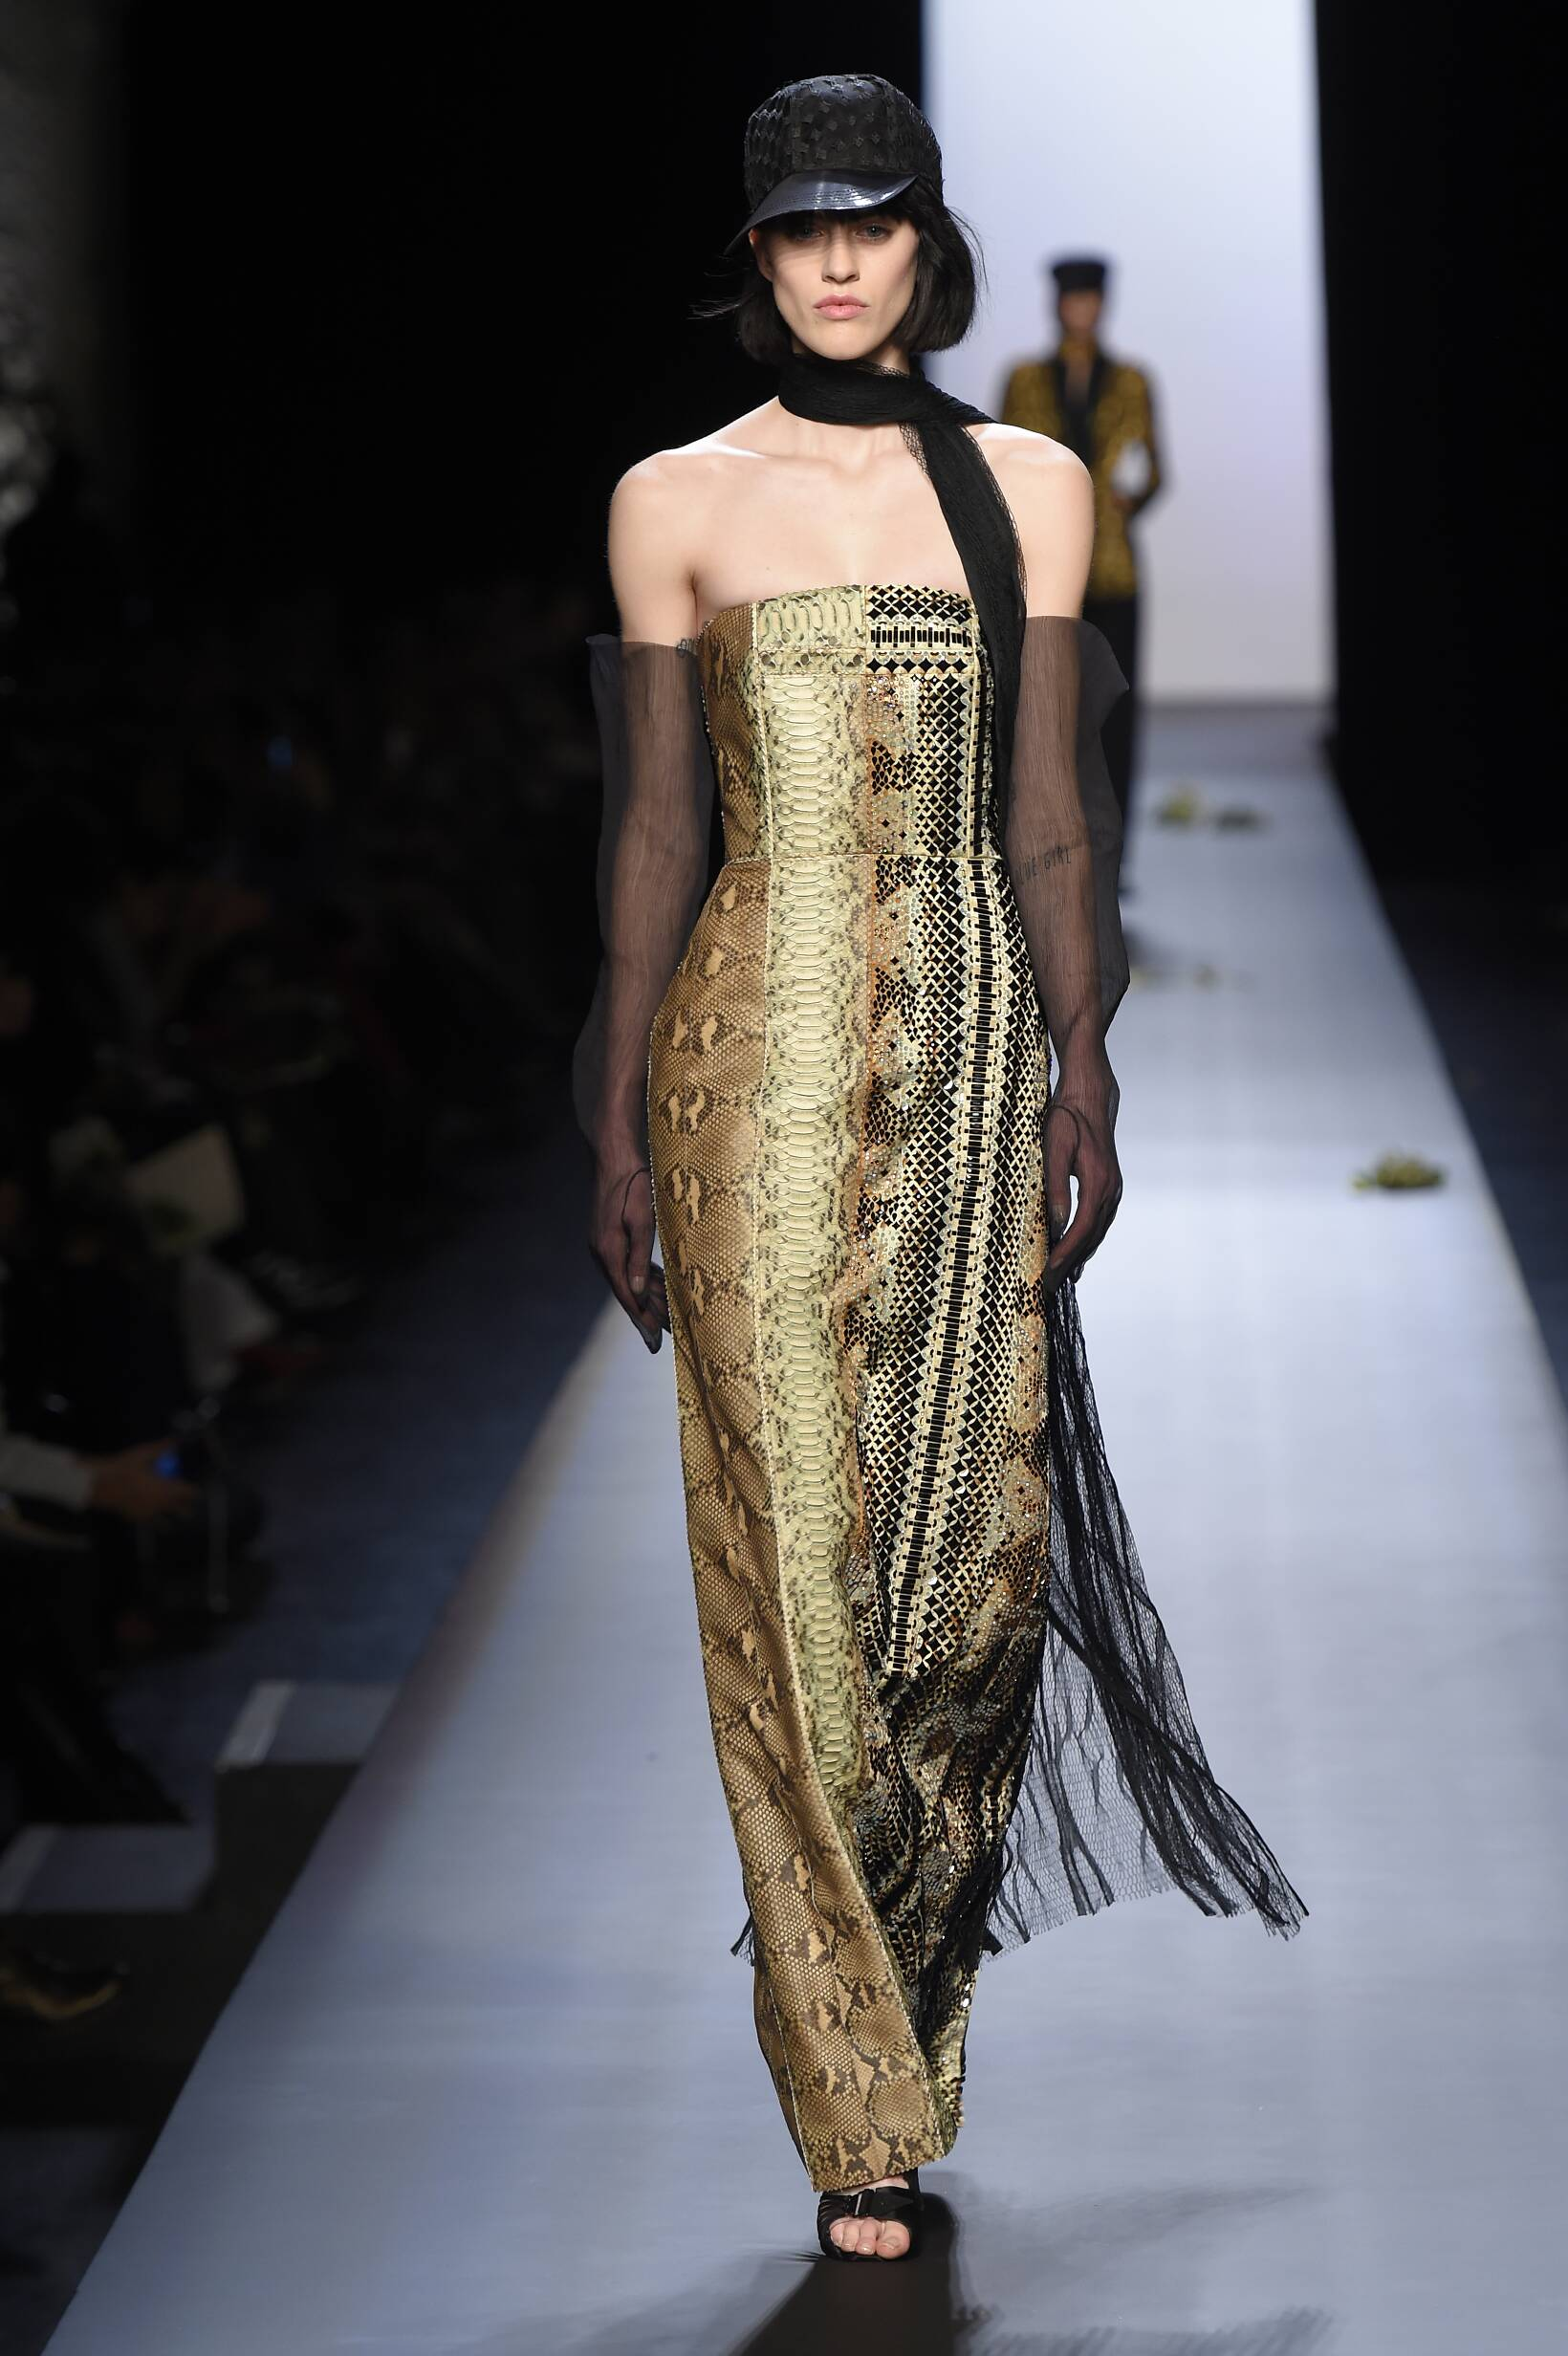 Jean Paul Gaultier Haute Couture Collection Women's SS 2015 Fashion Show